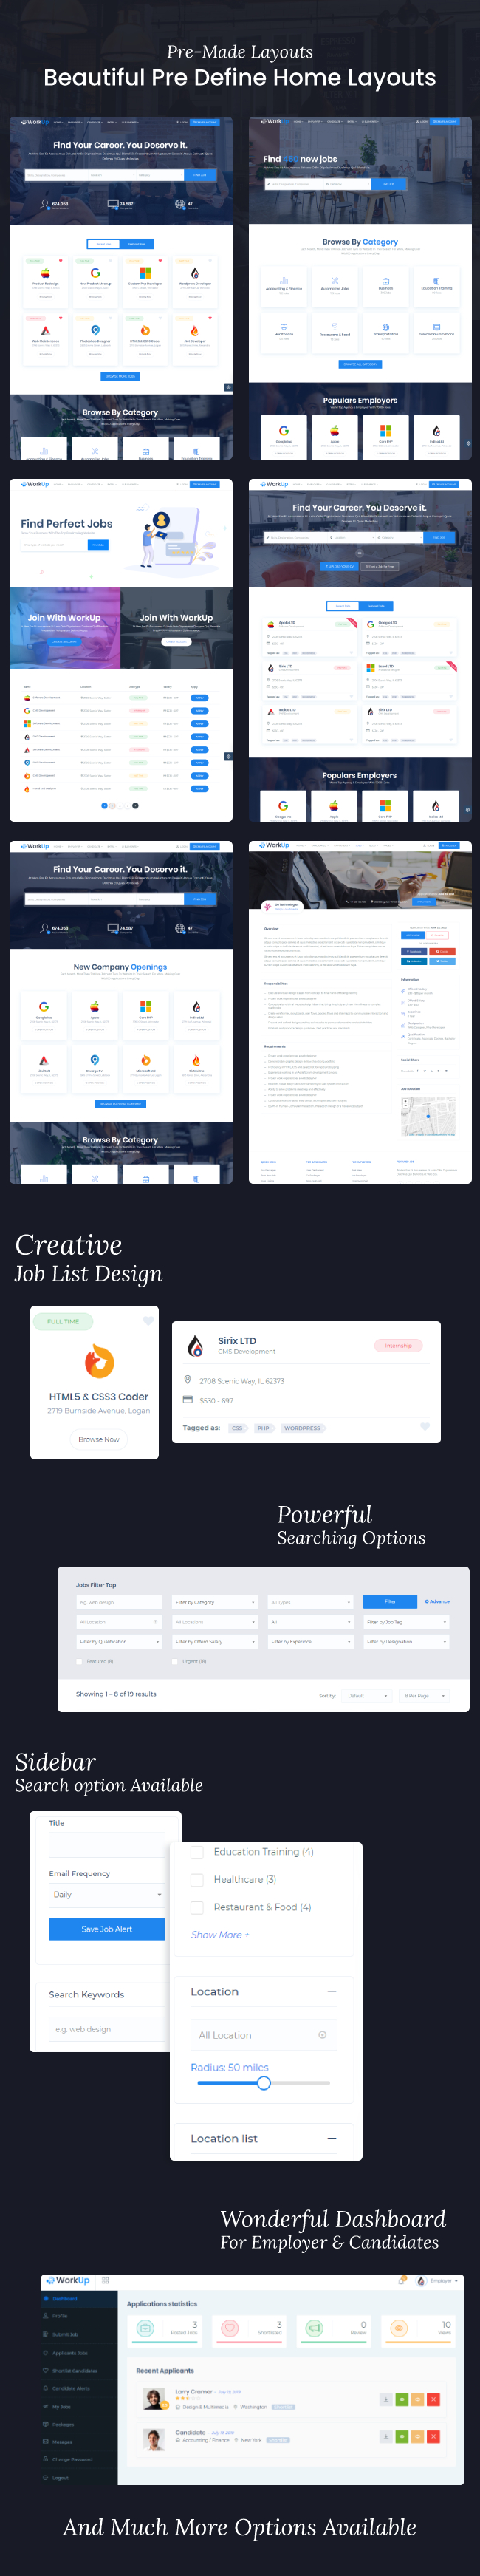 Workup – Job Board WordPress Theme - 4